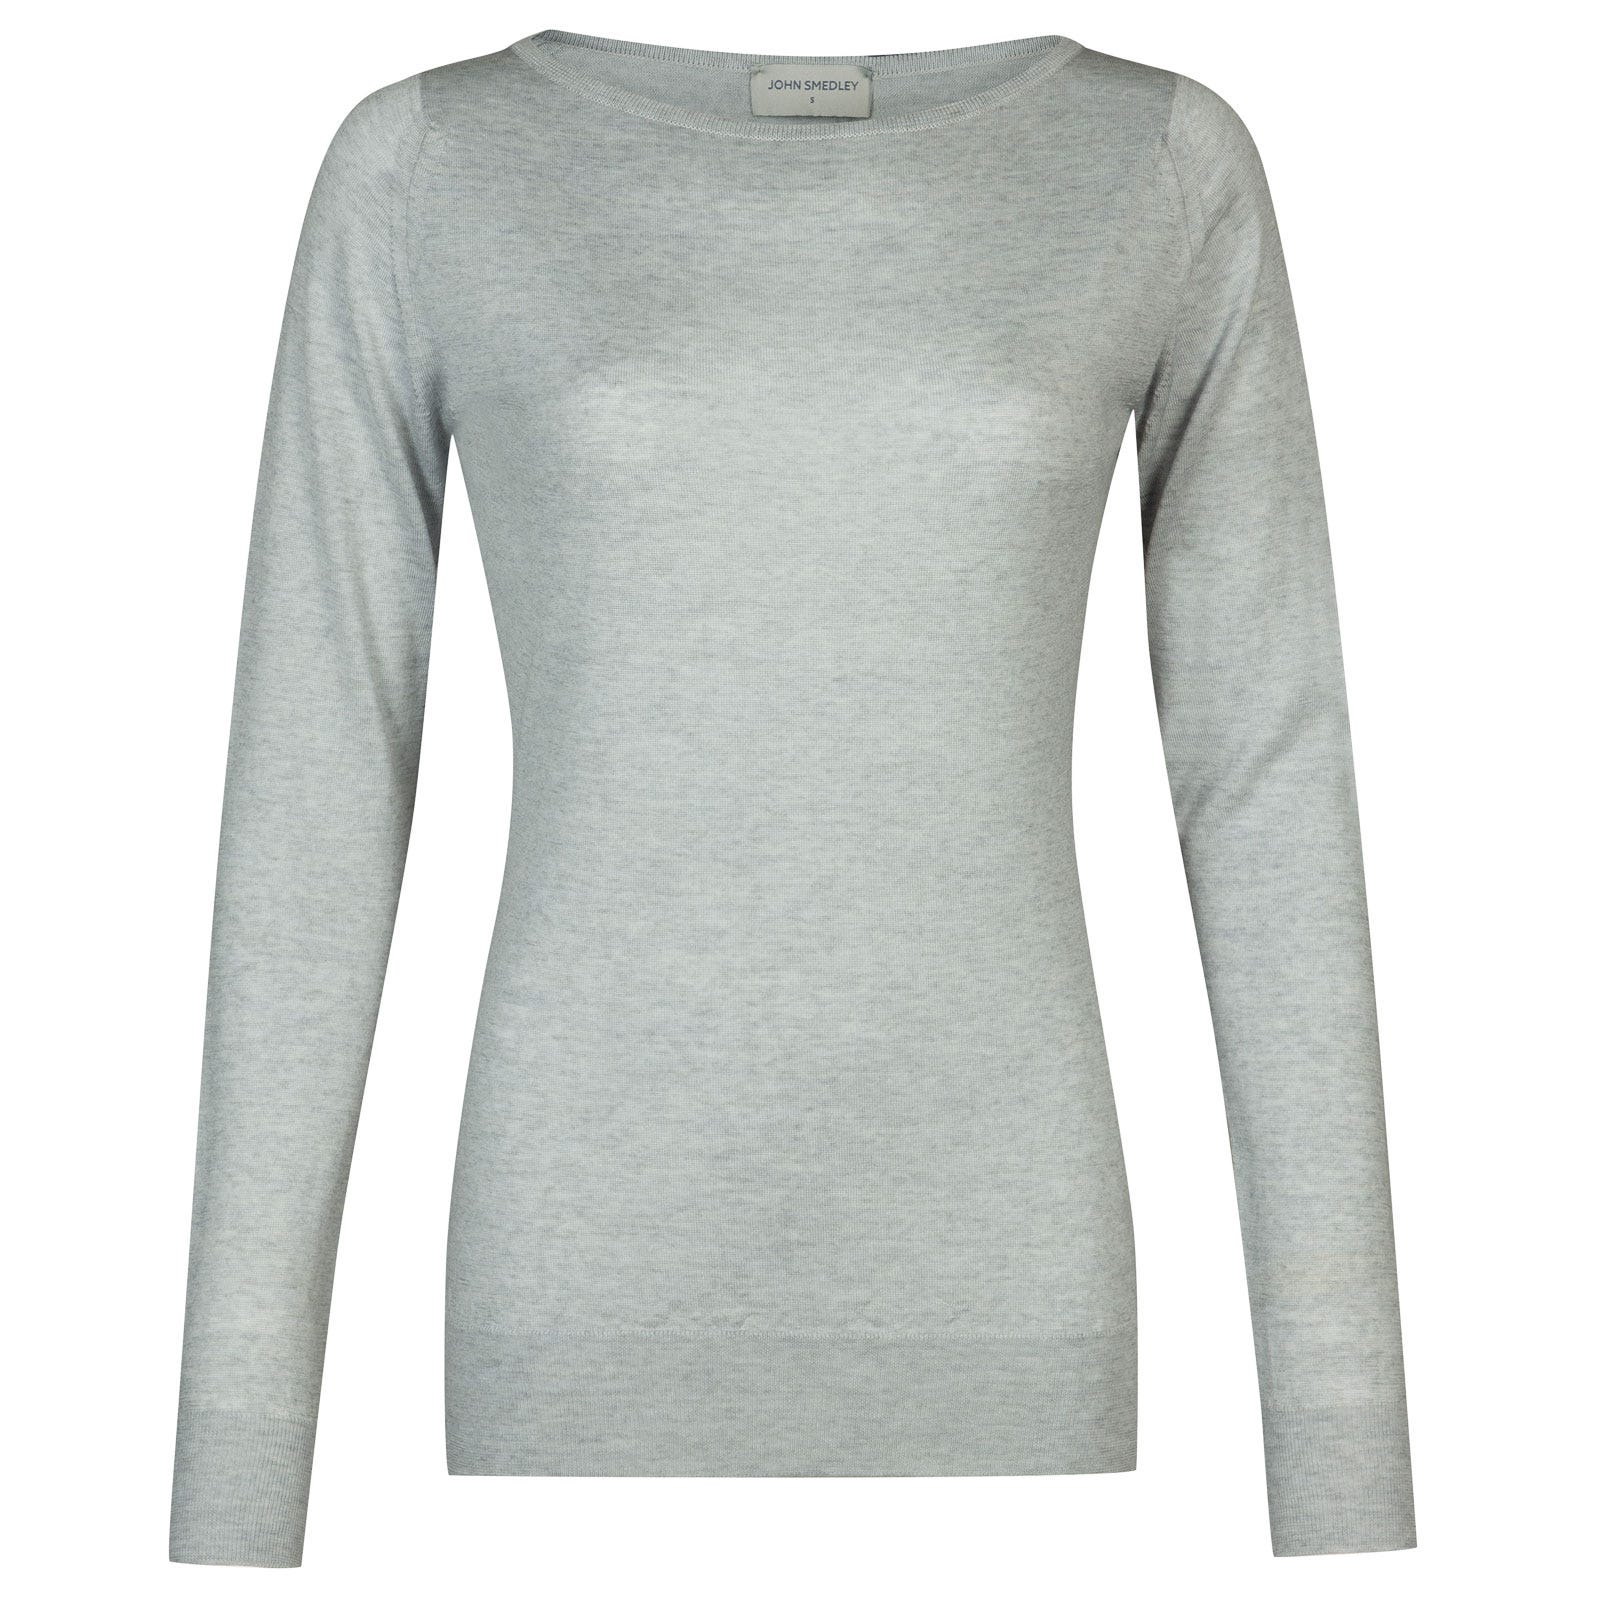 John Smedley susan Merino Wool Sweater in Bardot Grey-M